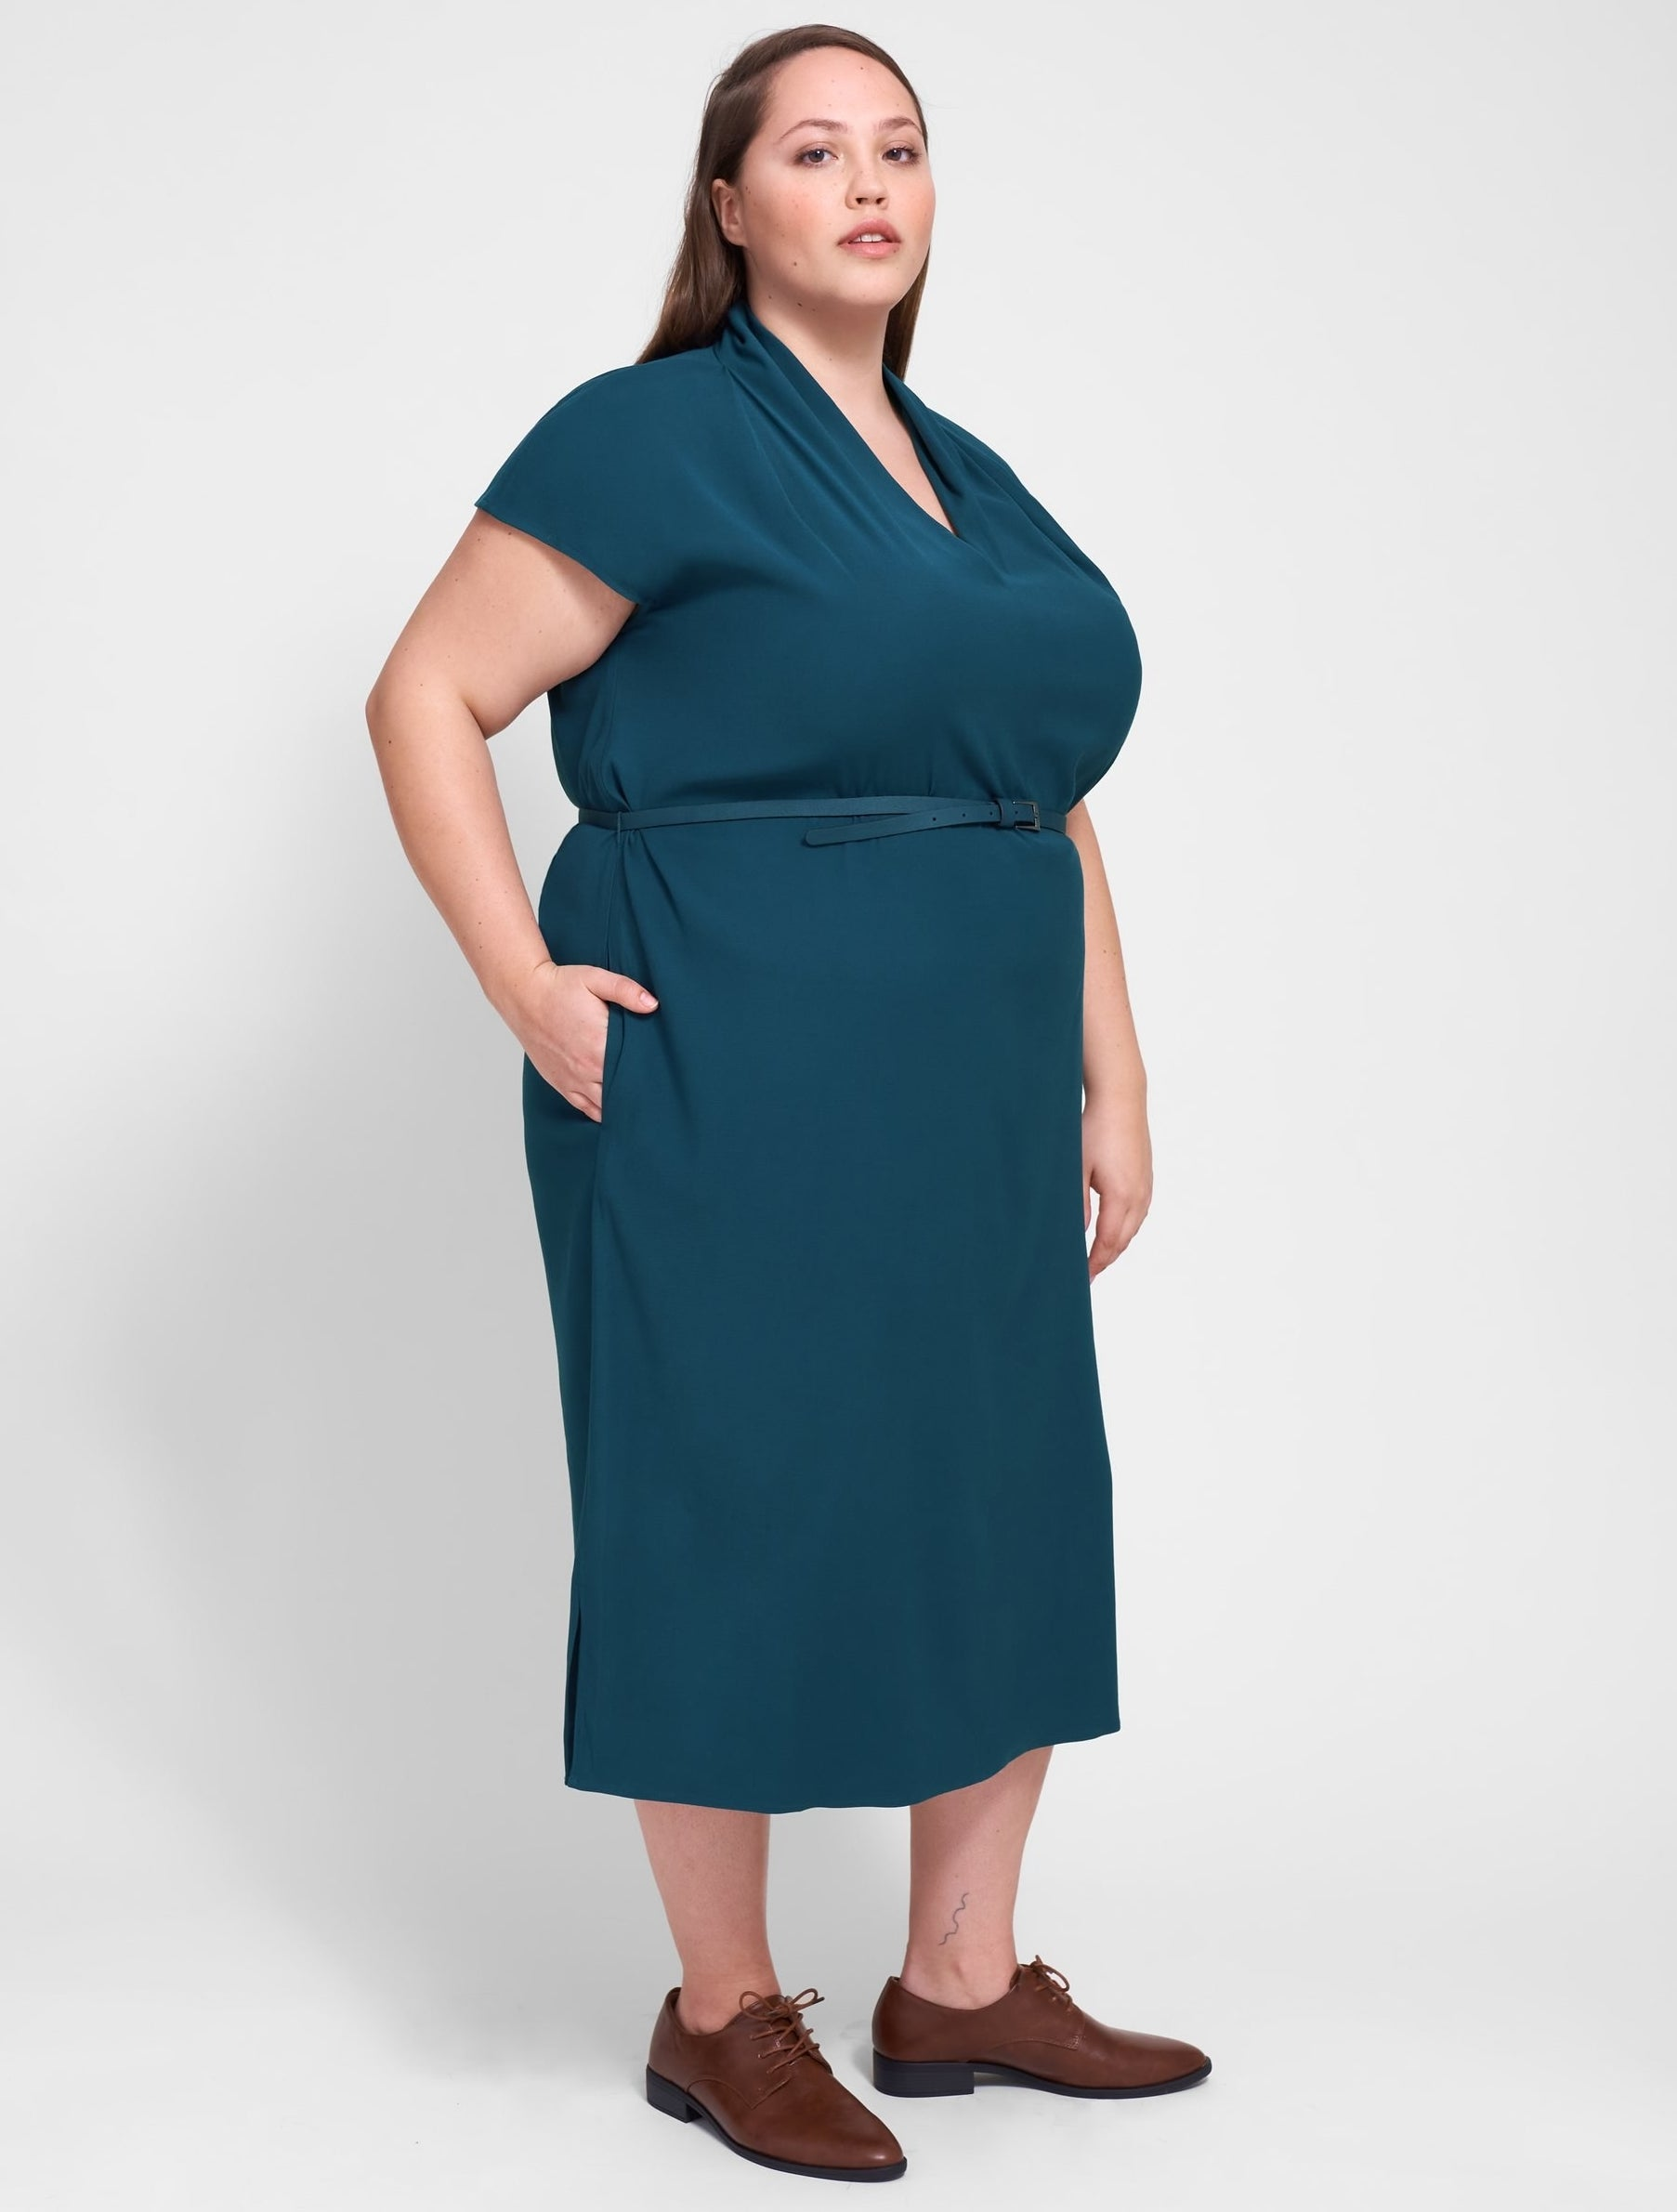 model in teal dress with short sleeves, V-neck, and high ruched collar